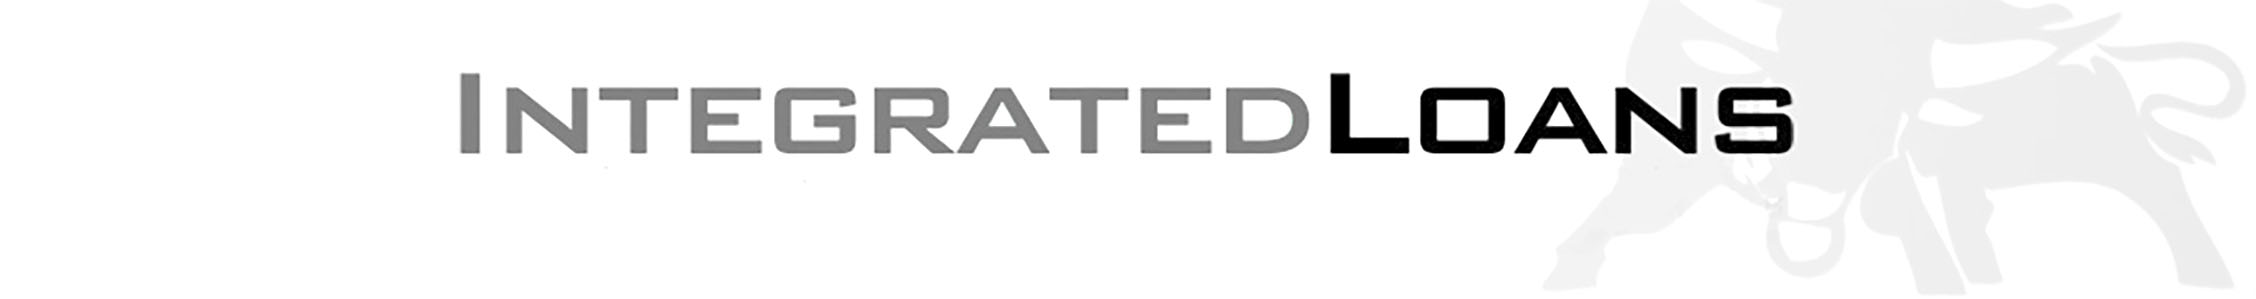 Integrated Loans Logo